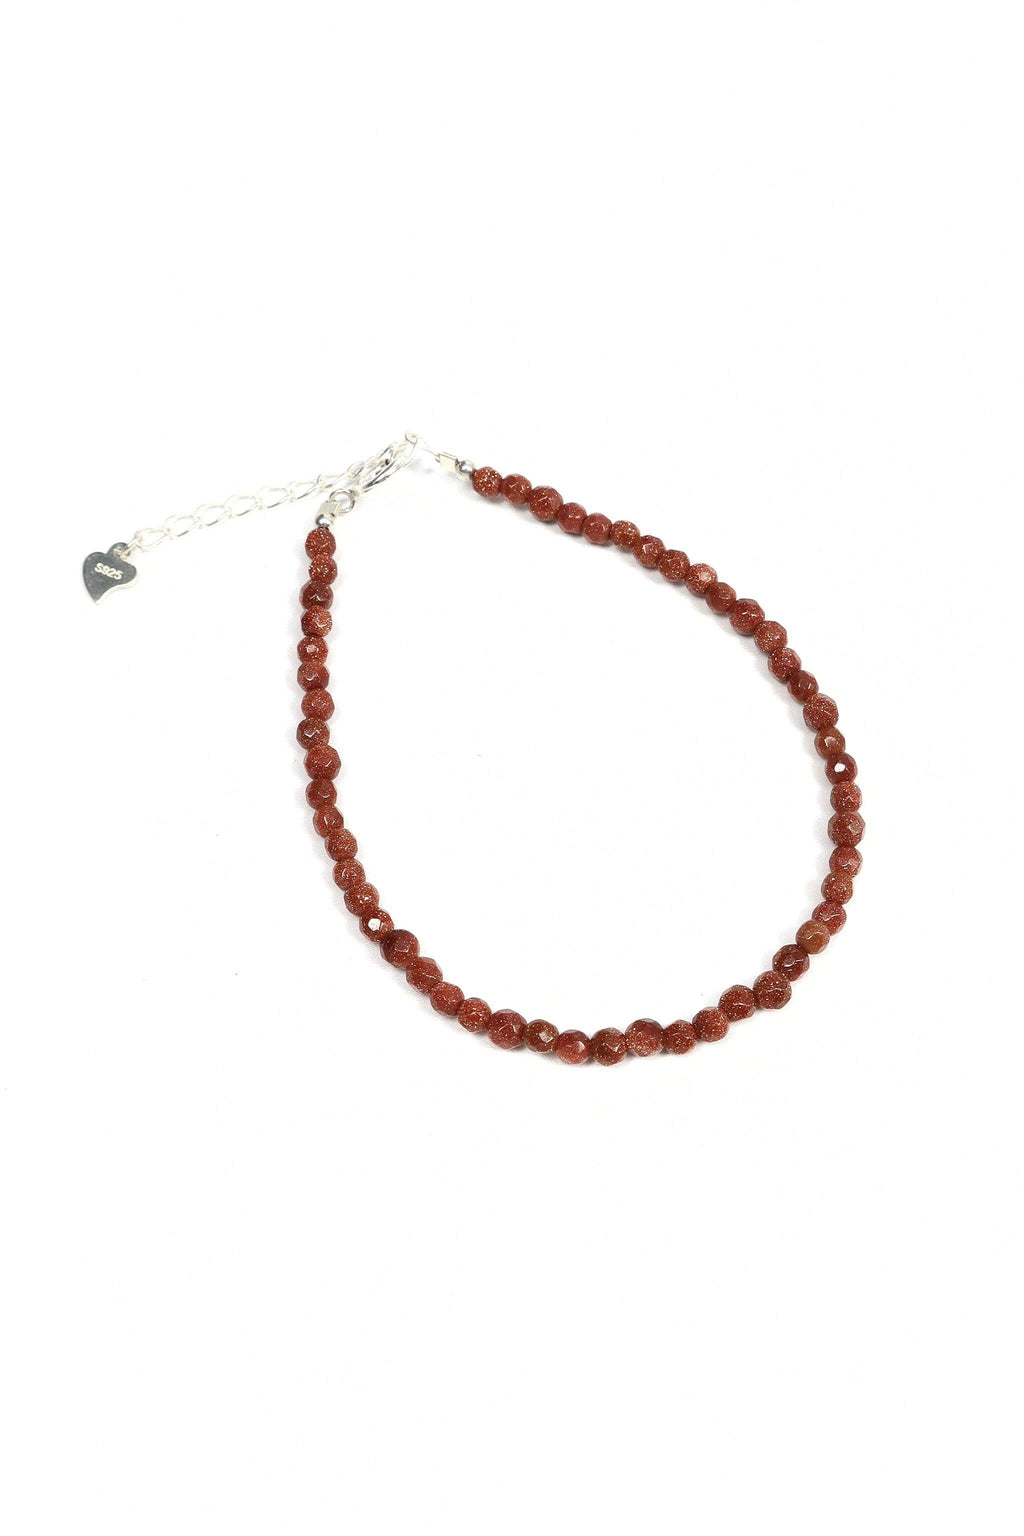 This is a dainty gemstone bracelet made with 2mm faceted Sandstone gemstones and a sterling silver clasp.